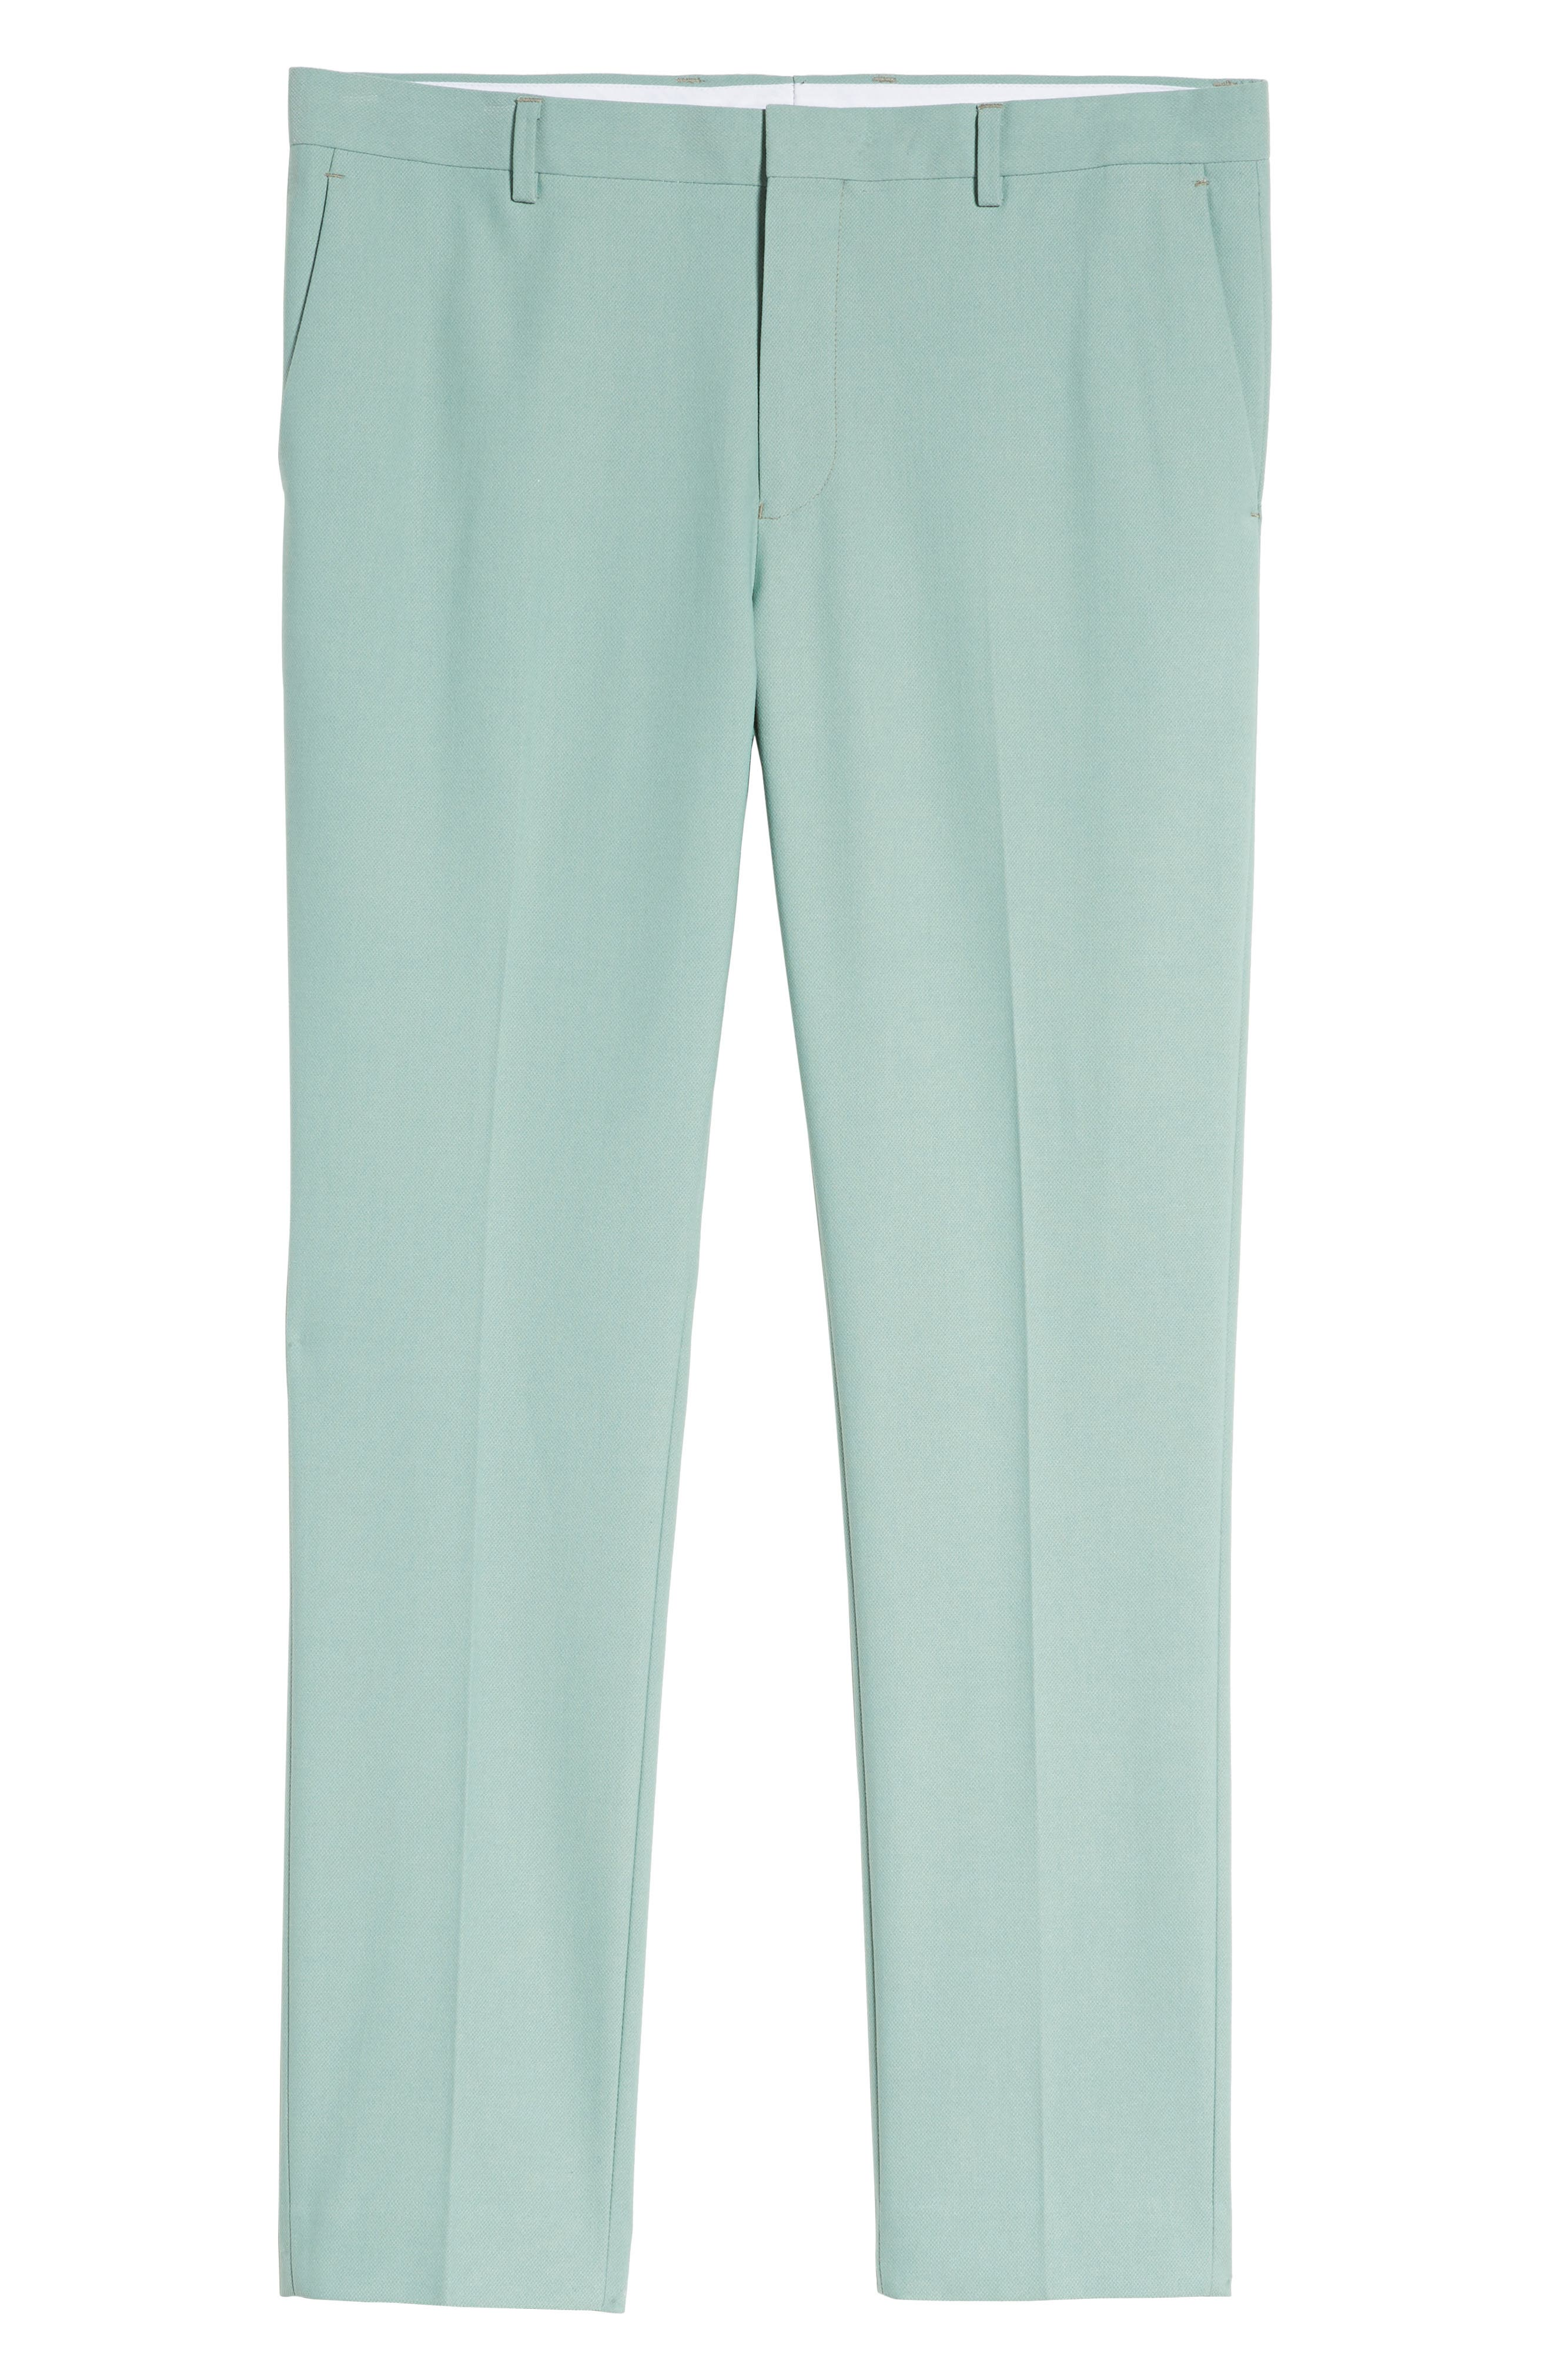 Skinny Fit Suit Trousers,                             Alternate thumbnail 7, color,                             Green